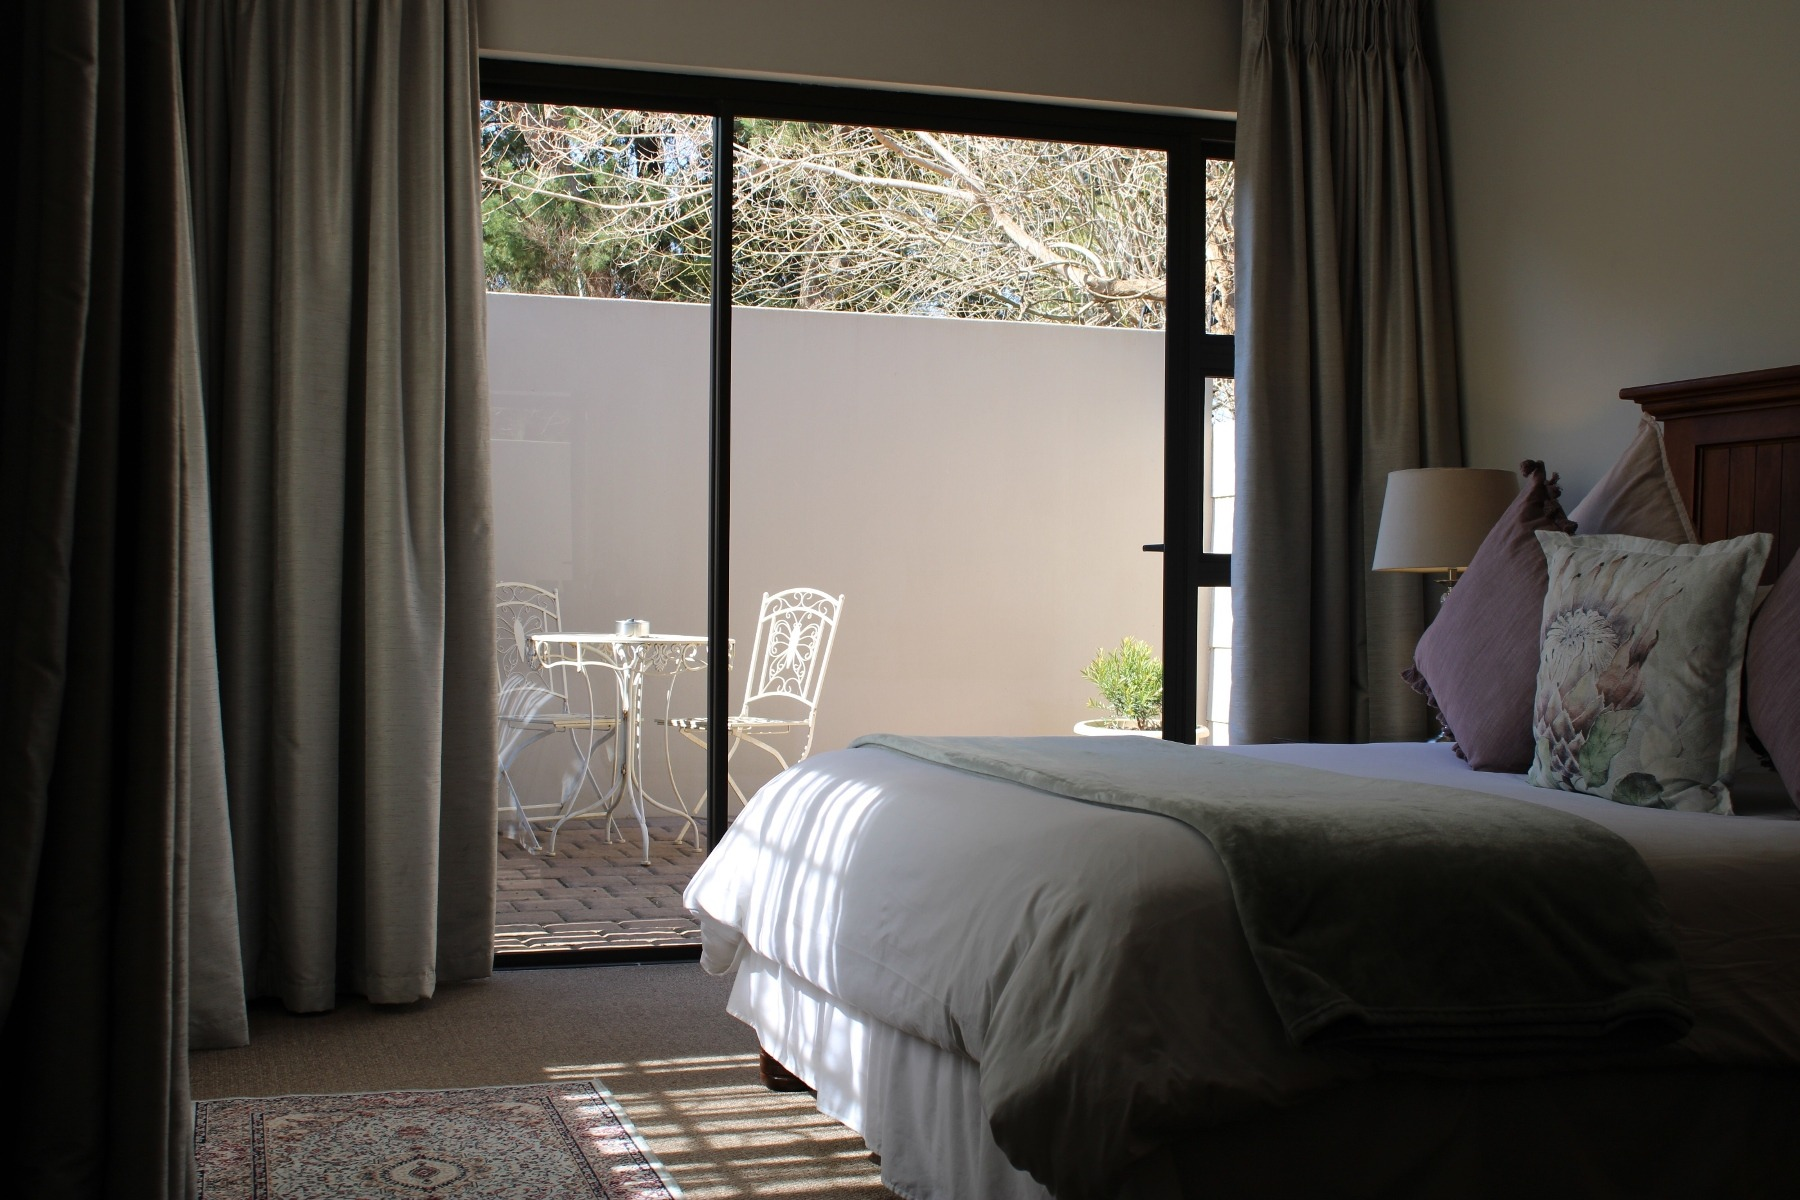 abiento-guesthouse-room6-14